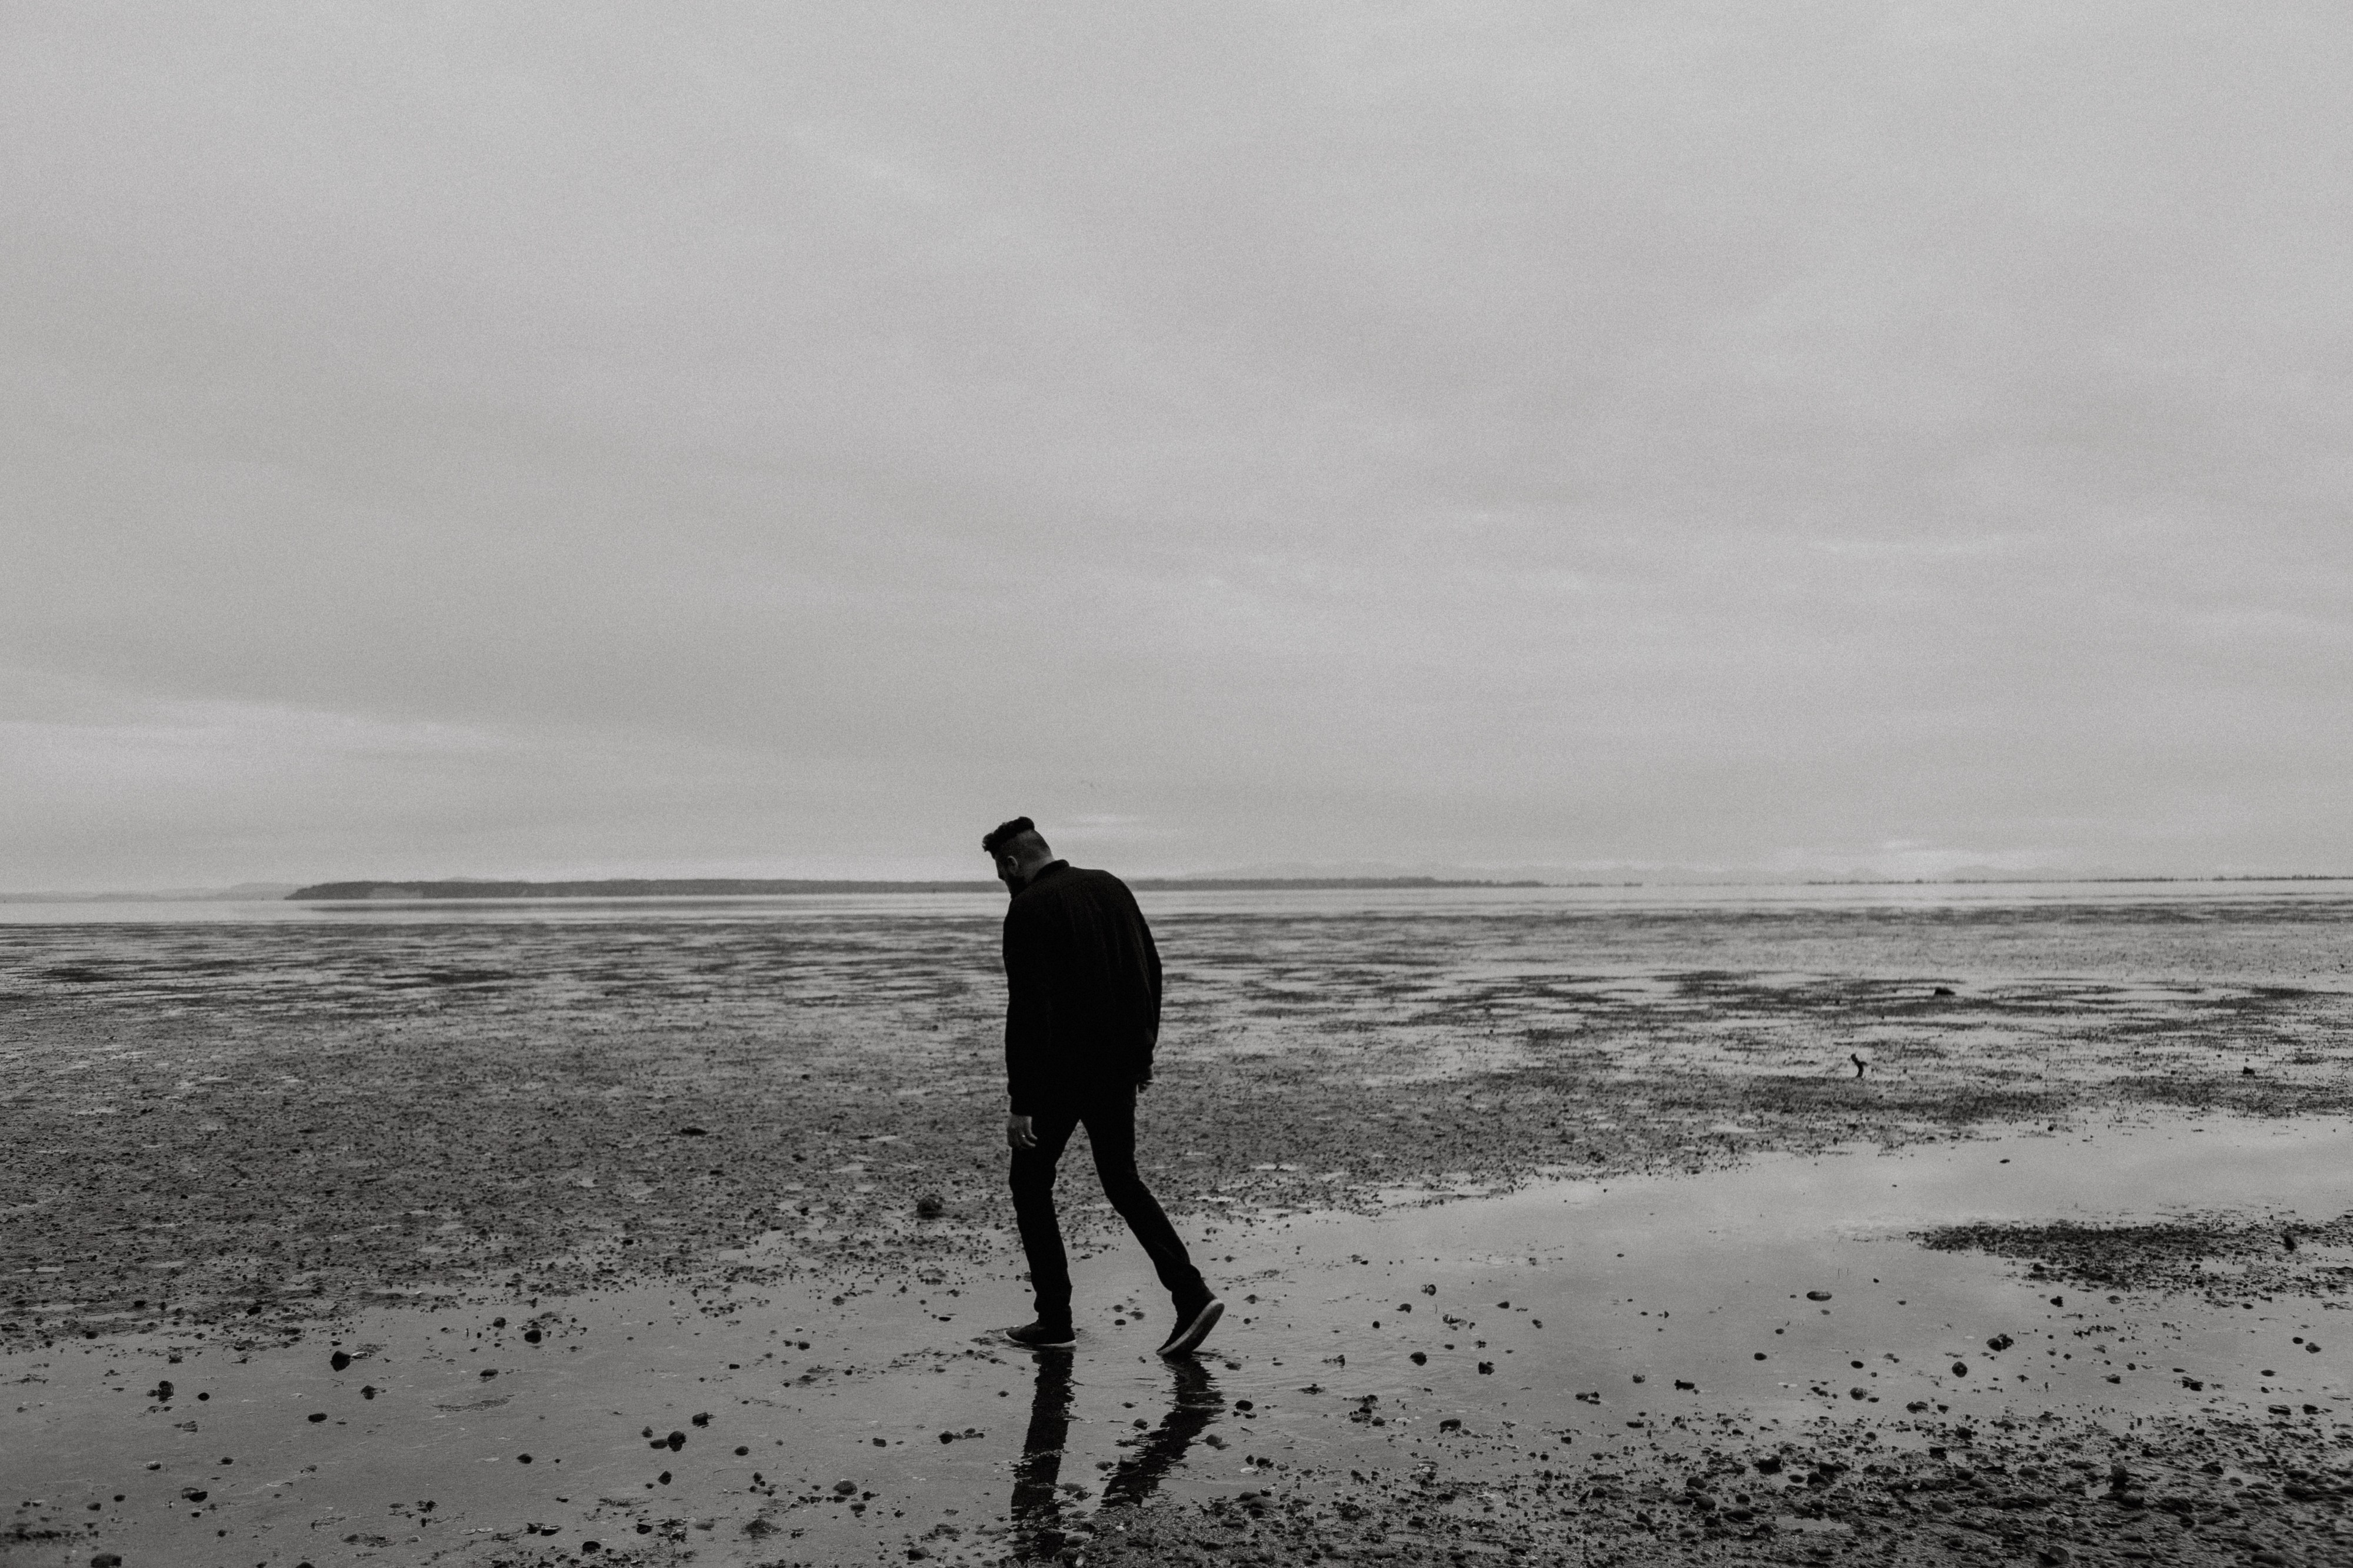 Man walking alone on a beach with his head down in sadness